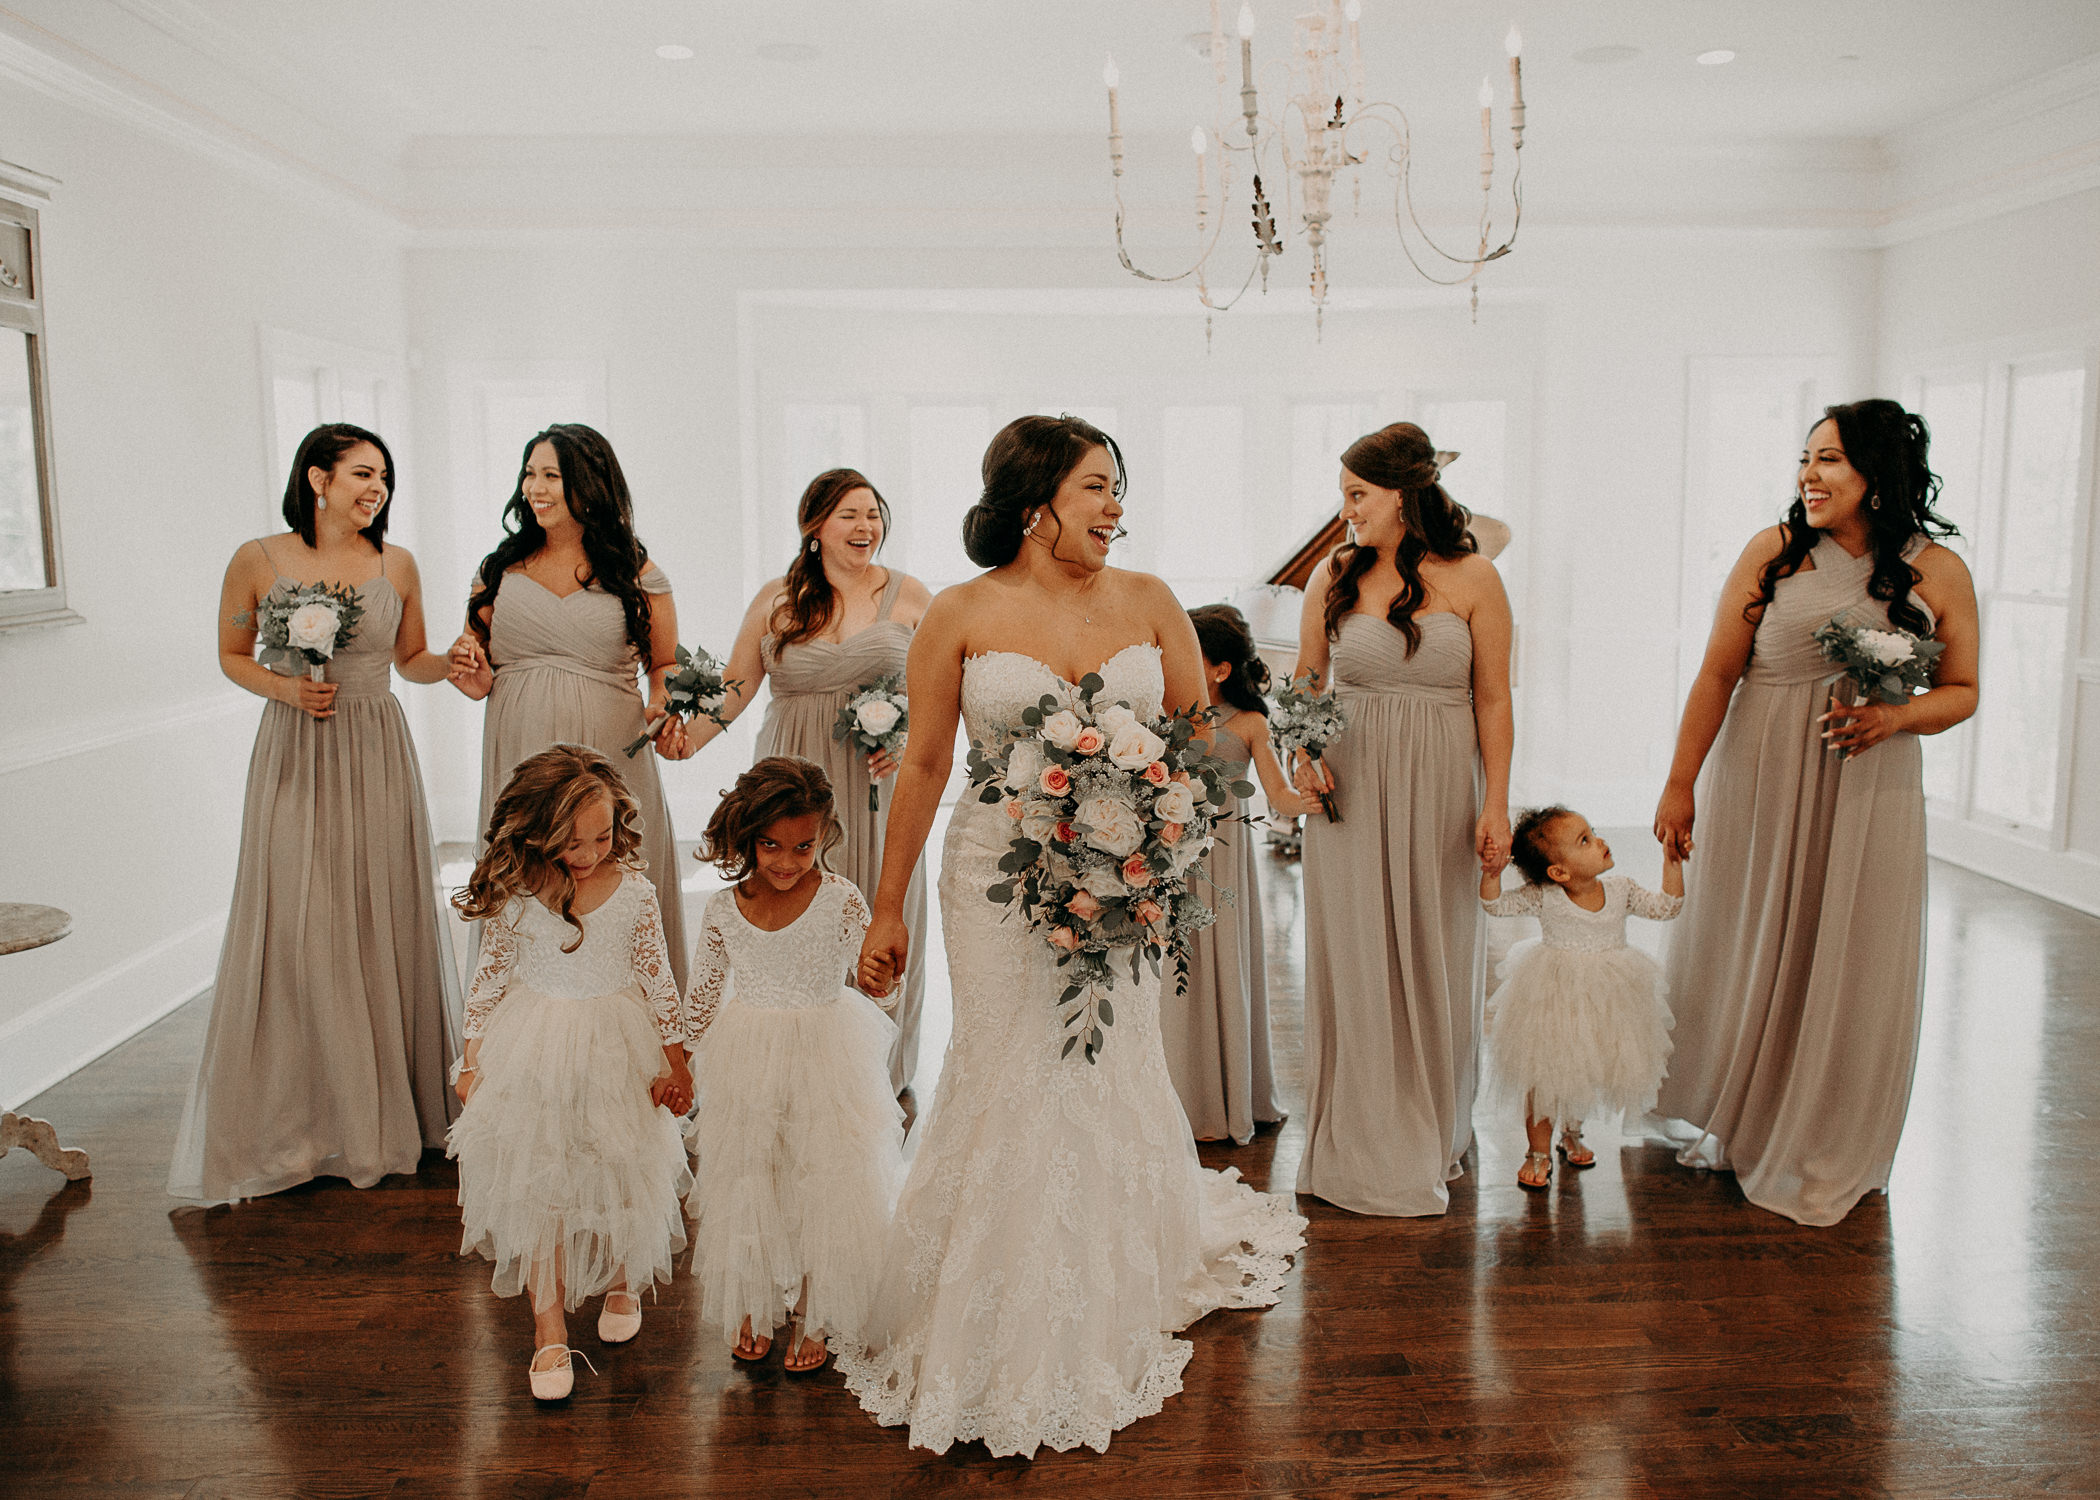 20  - Little River Farms - first look - Atlanta - Wedding Venue - Atlanta Wedding Photographer - Georgia weddings details wedding dress shoes gather groom bridal party .jpg